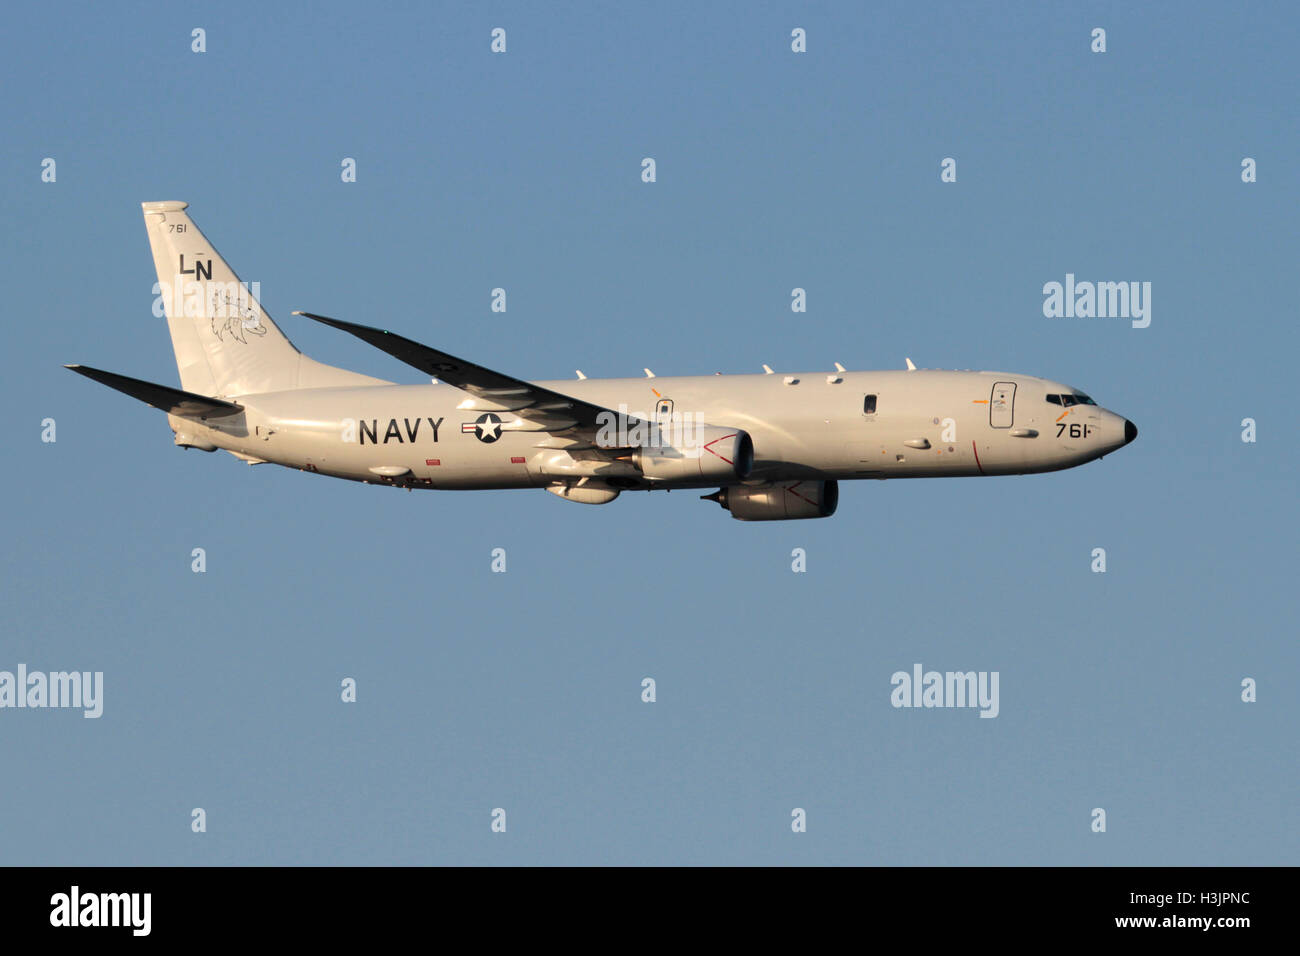 Naval aviation. Boeing P-8A Poseidon maritime patrol aircraft of the United States Navy in flight - Stock Image